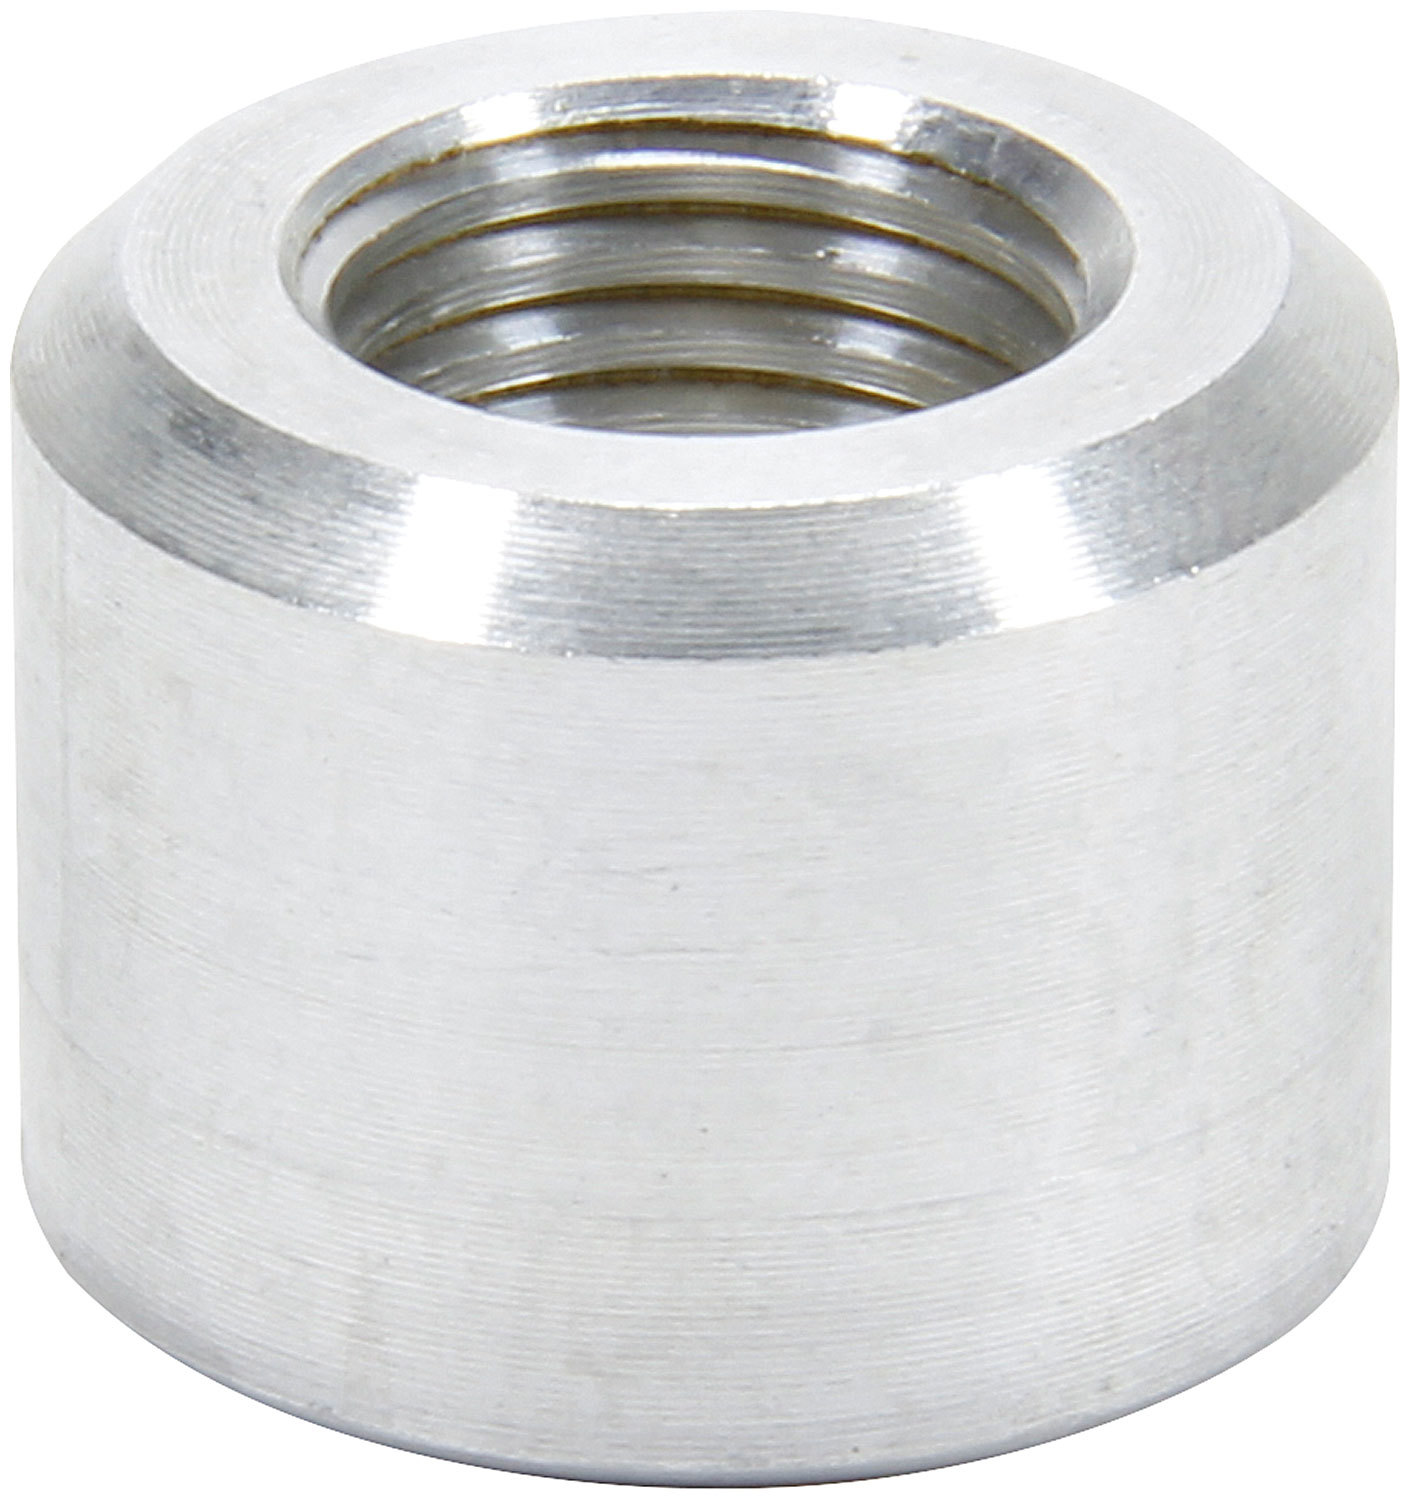 Allstar Performance 50781 Bung, 6 AN Female O-Ring, Weld-On, Aluminum, Natural, Each